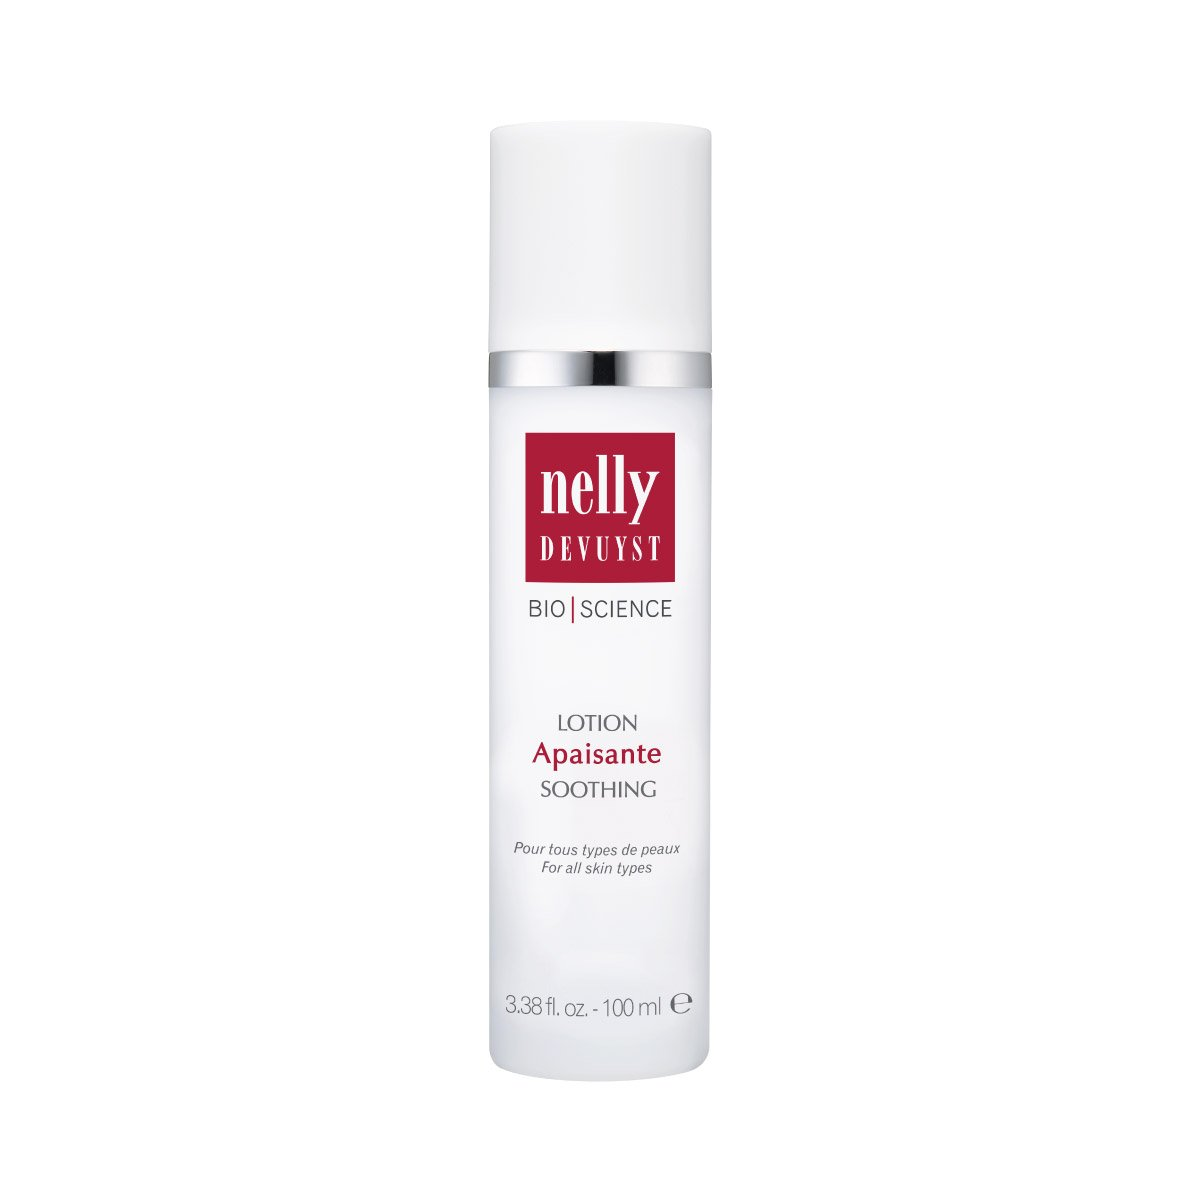 Lotion Apaisante Bioscience - Nelly Devuyst